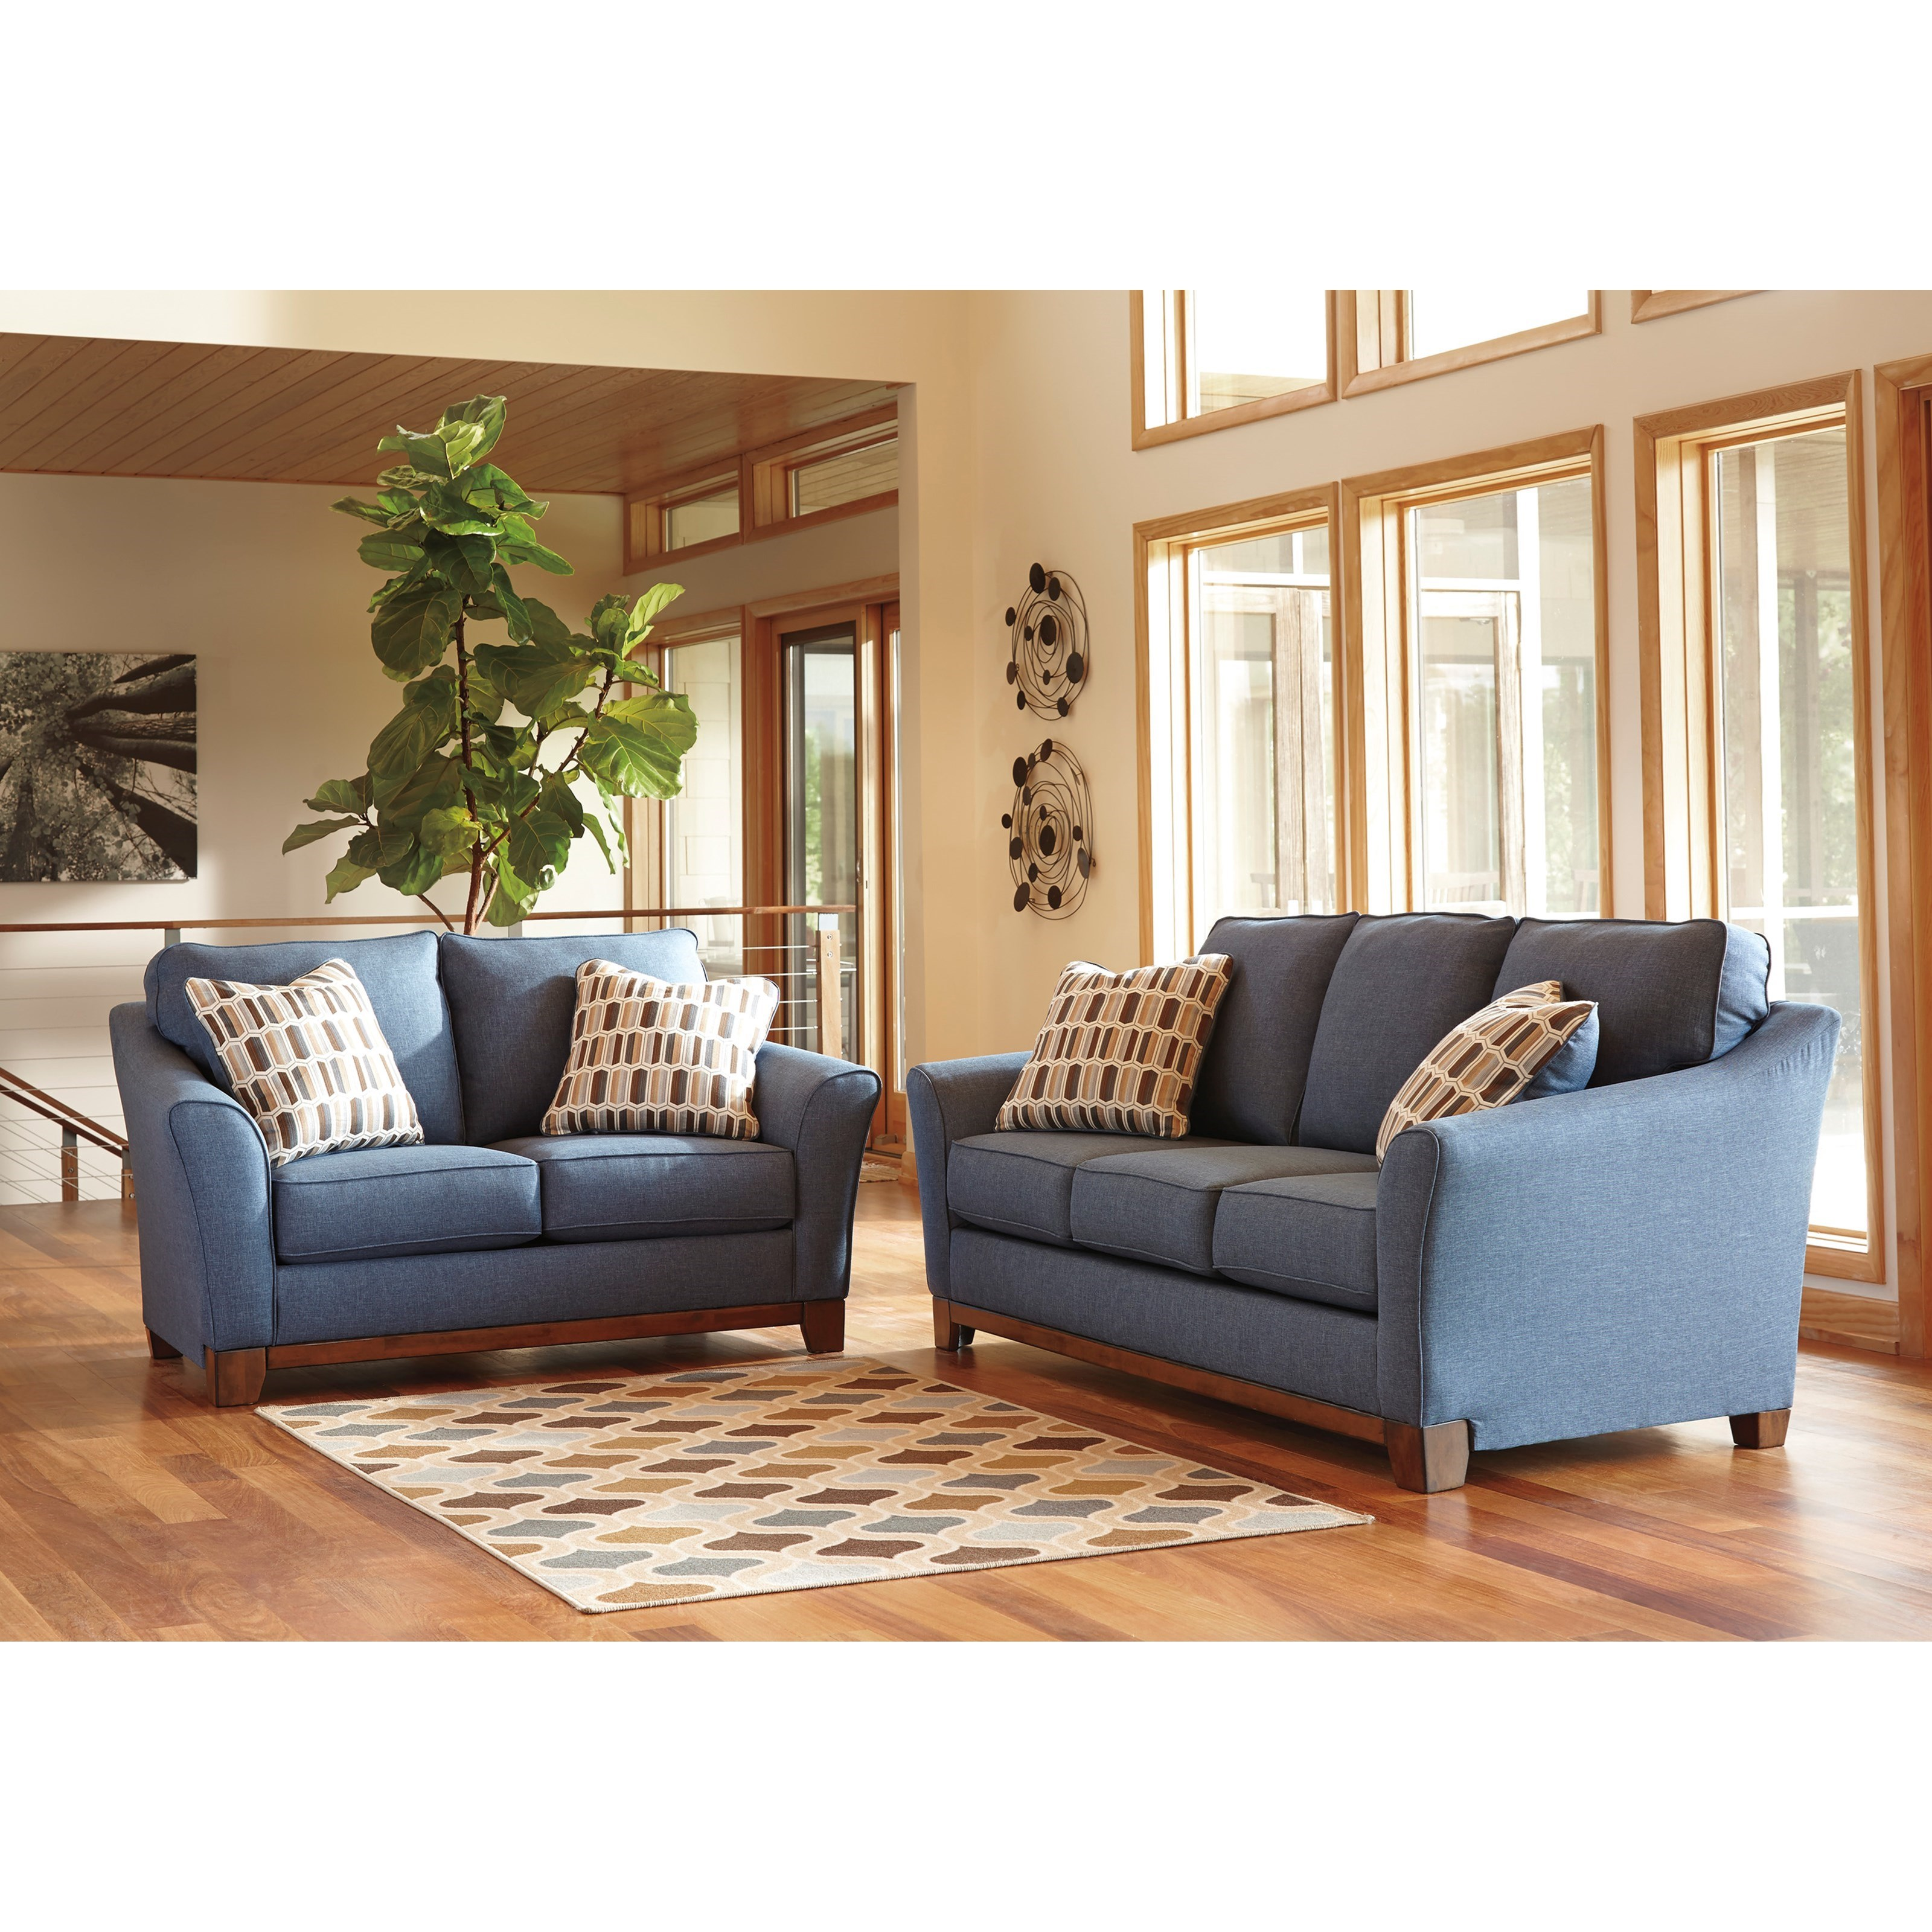 Stationary living room group item number 43807 living room group 1